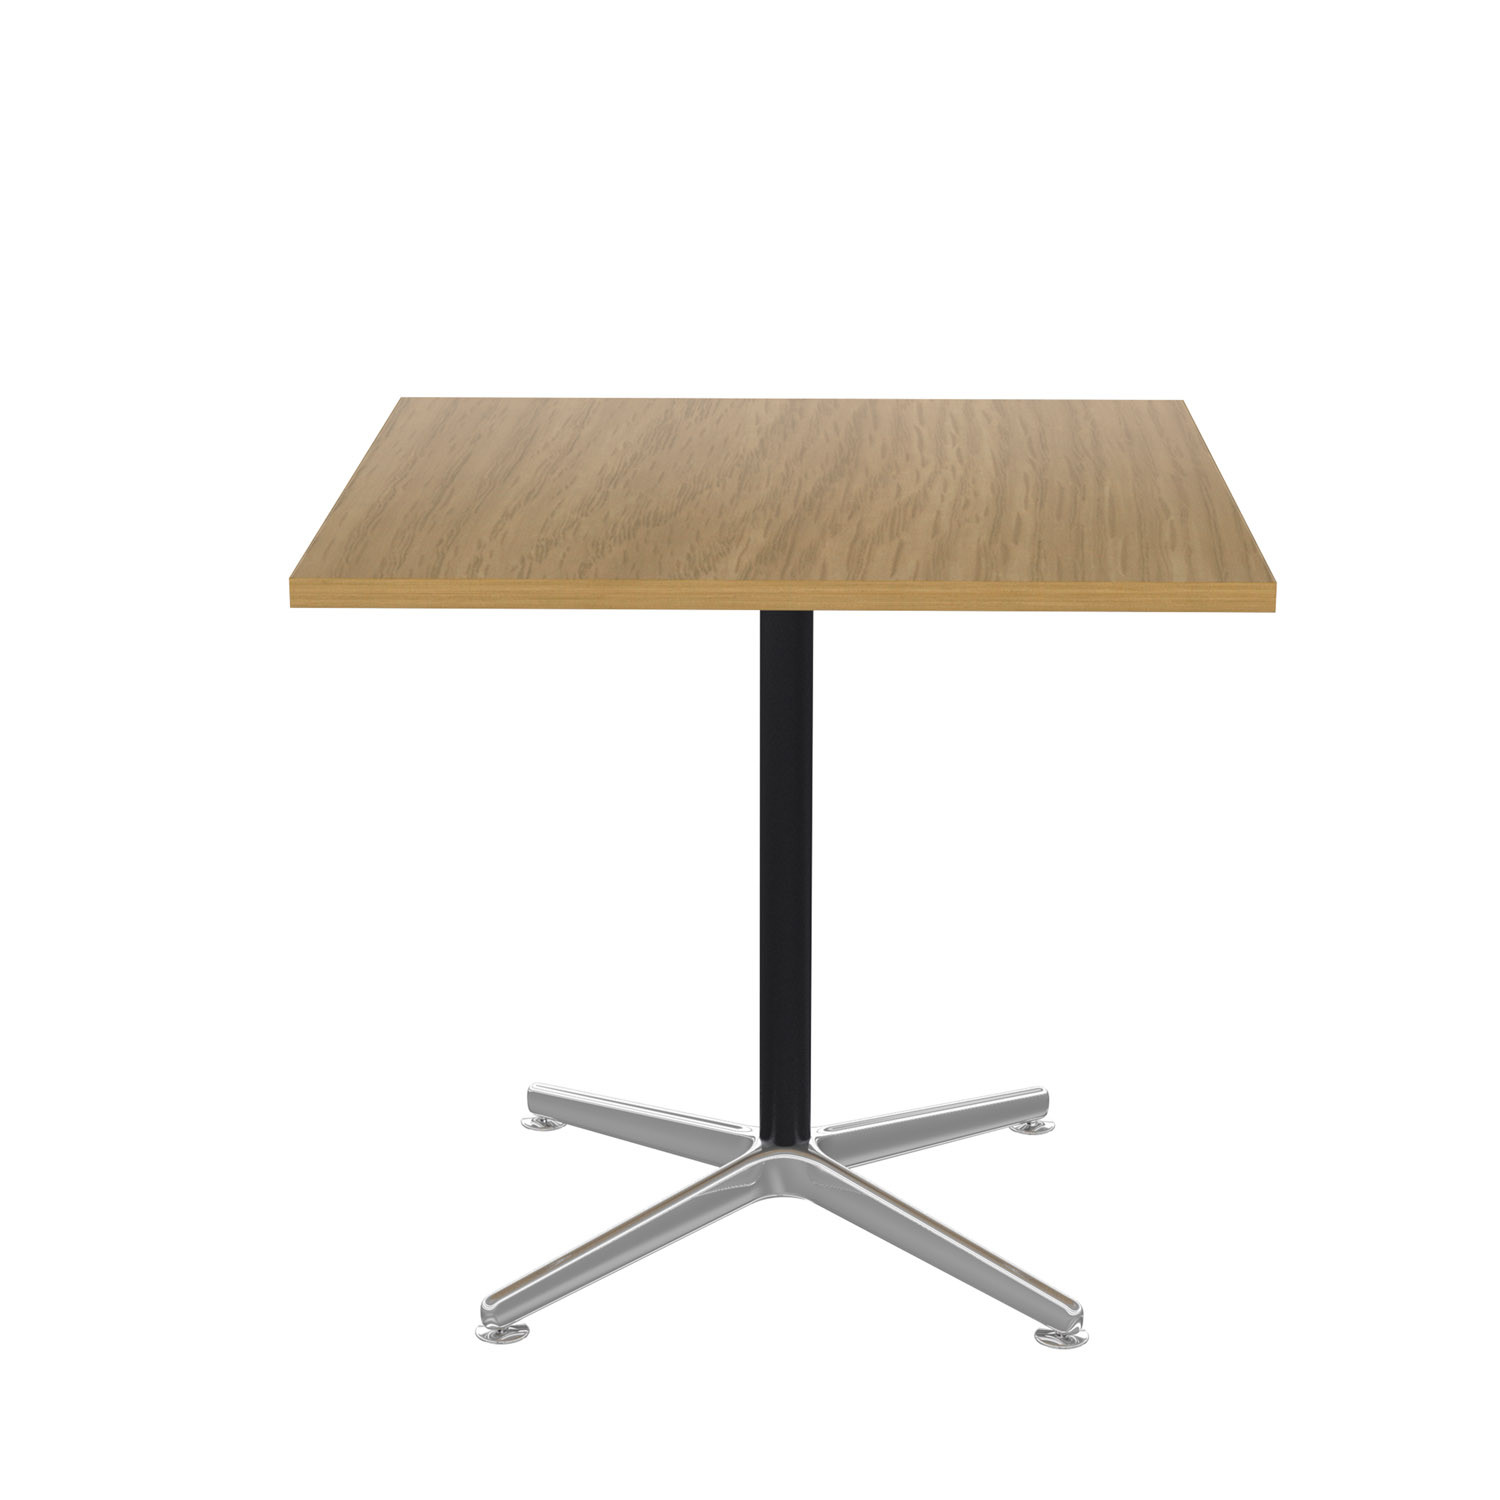 Ad-Lib Meeting Table